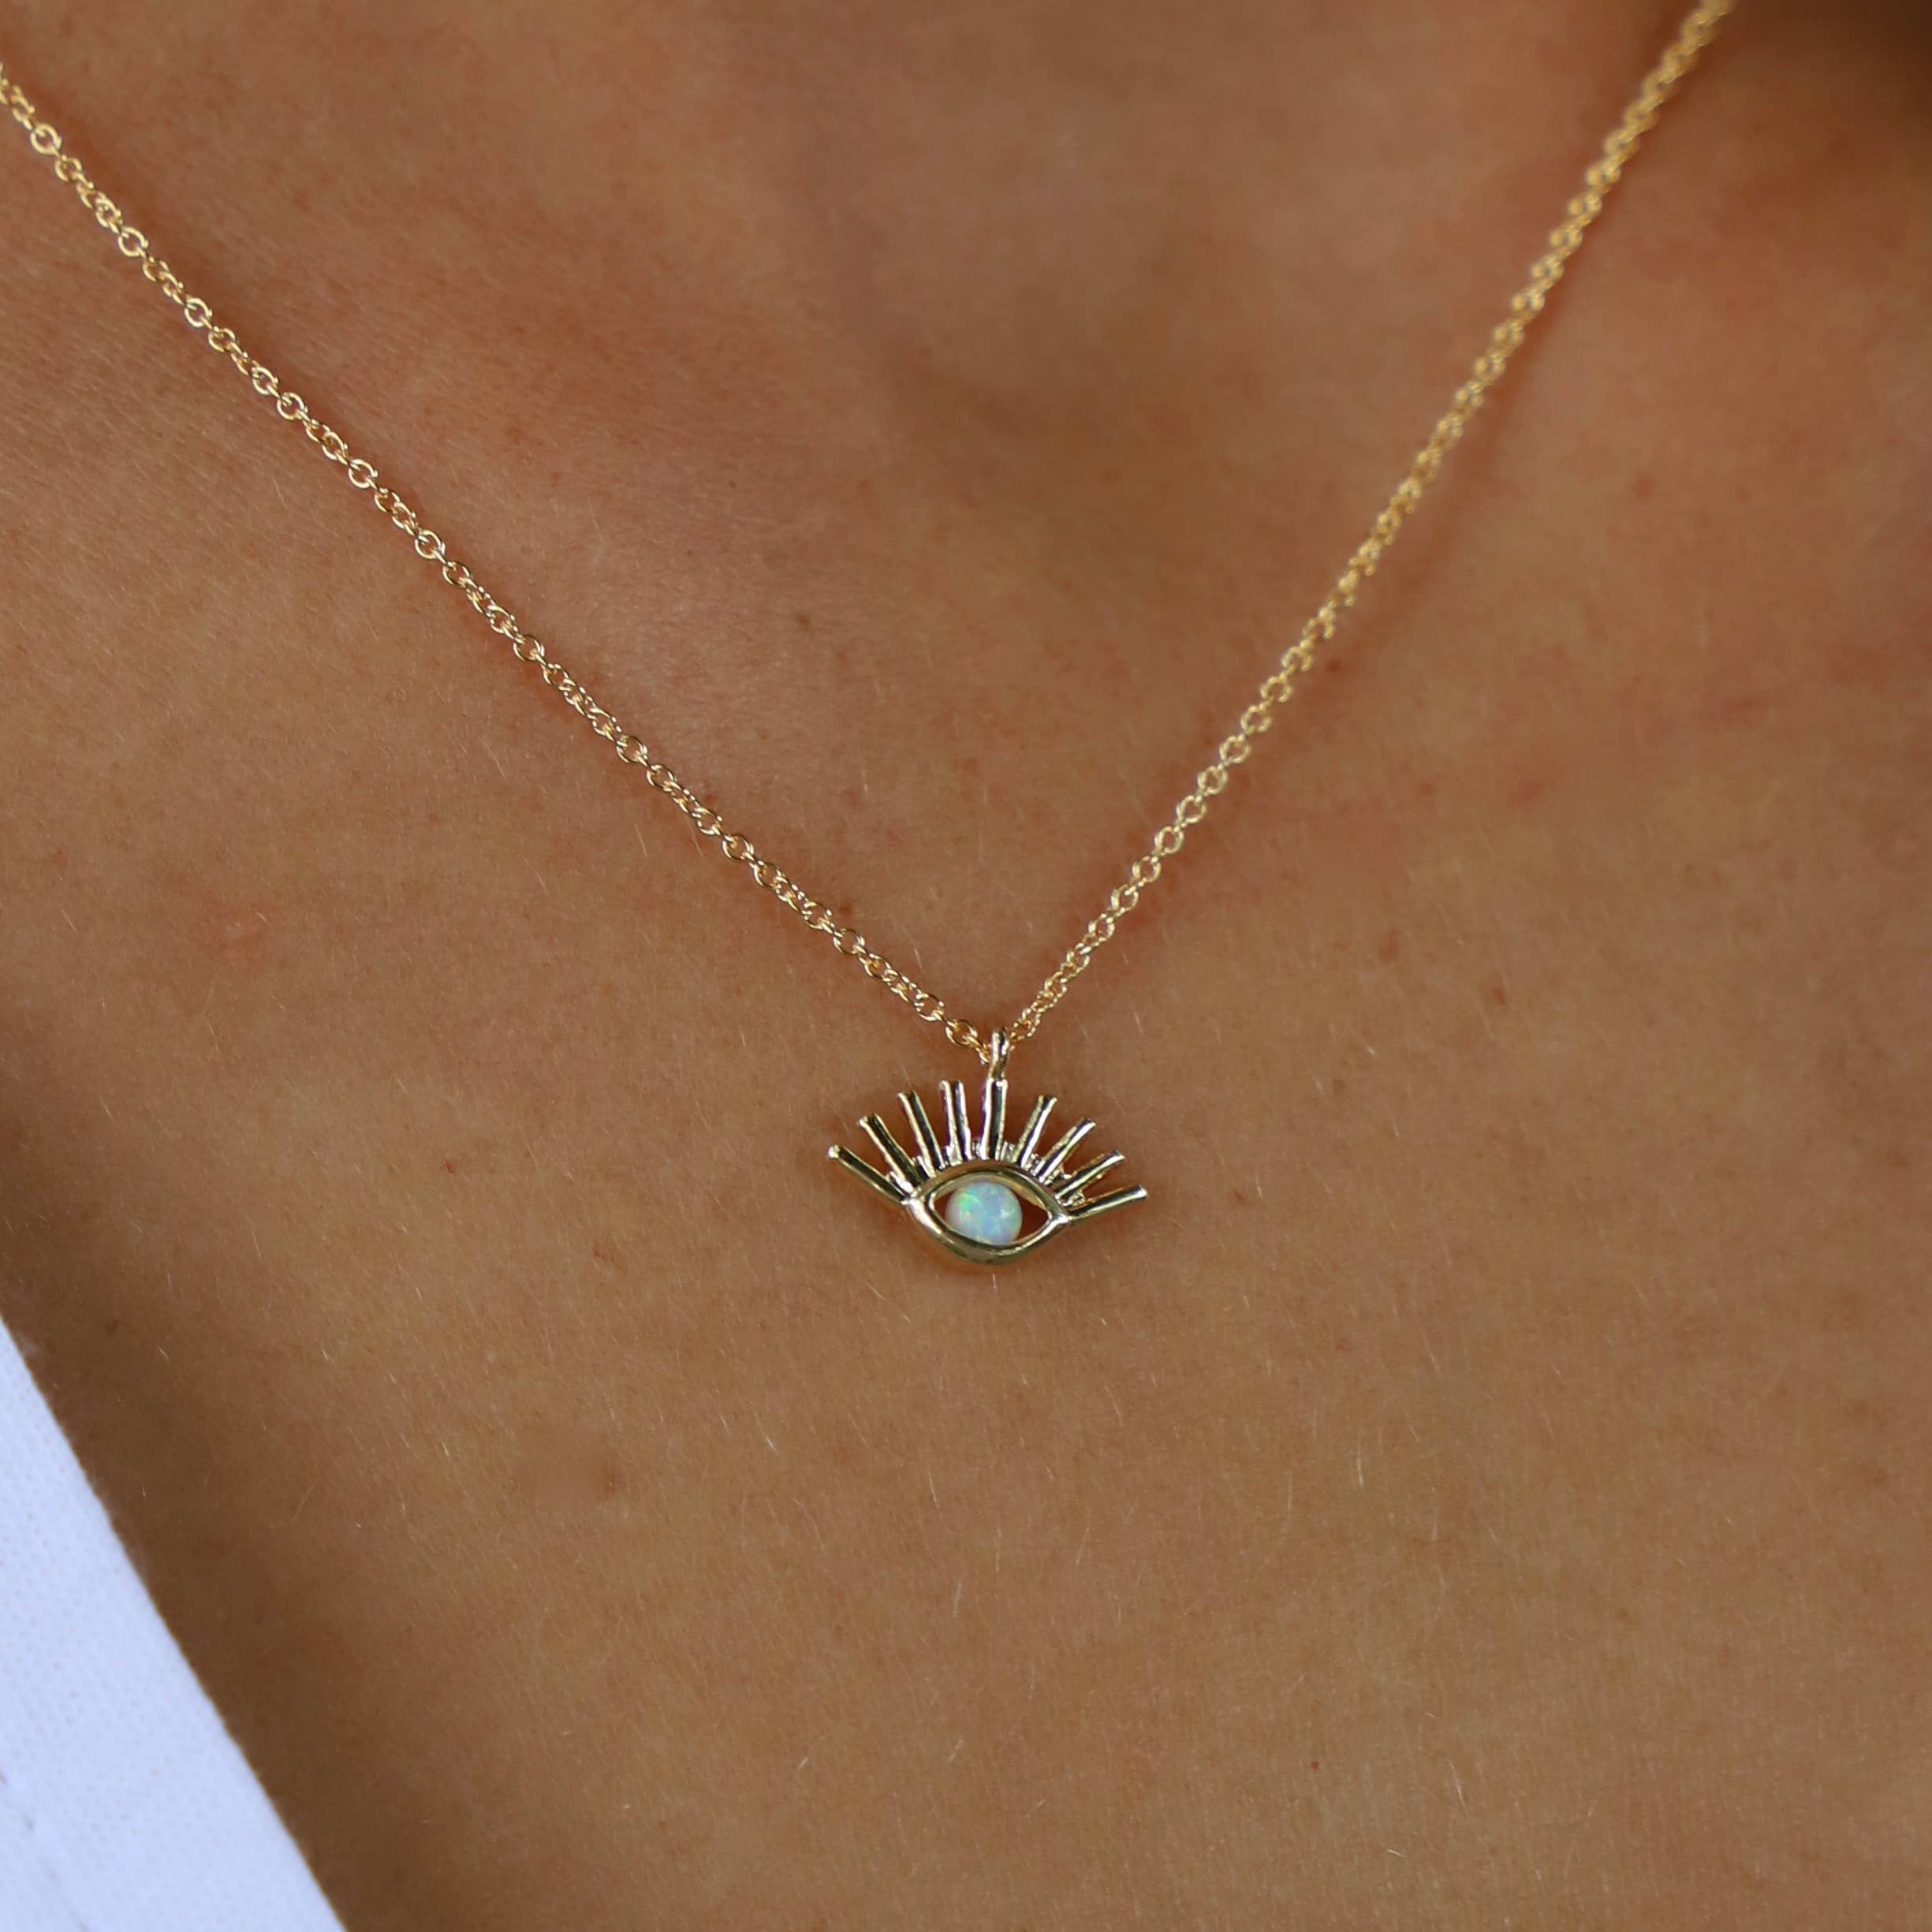 Katie Waltman Jewelry - Miniature Opal Evil Eye Silhouette Necklace - jewelry - Katie Waltman Jewelry - MOD&SOUL